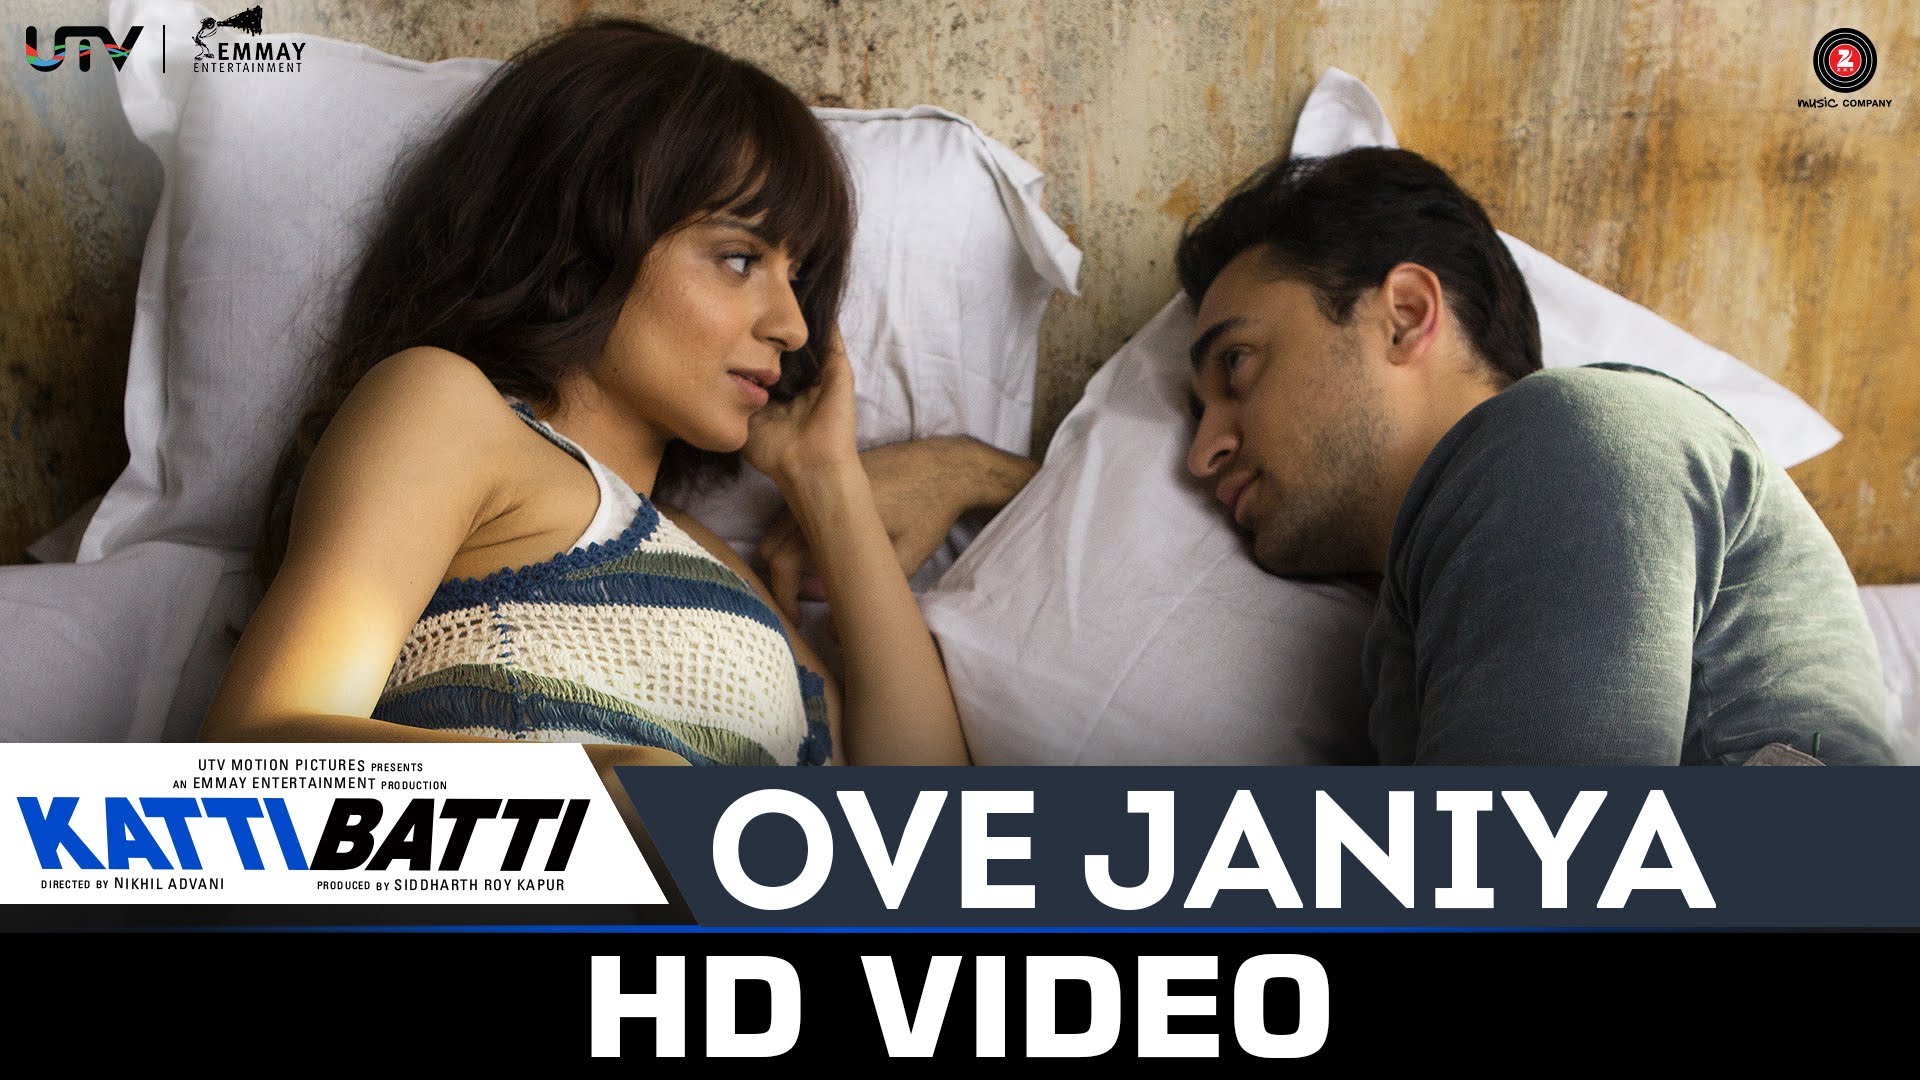 Katti Batti New Song 'Ove Janiya' is an Ode to the lovers